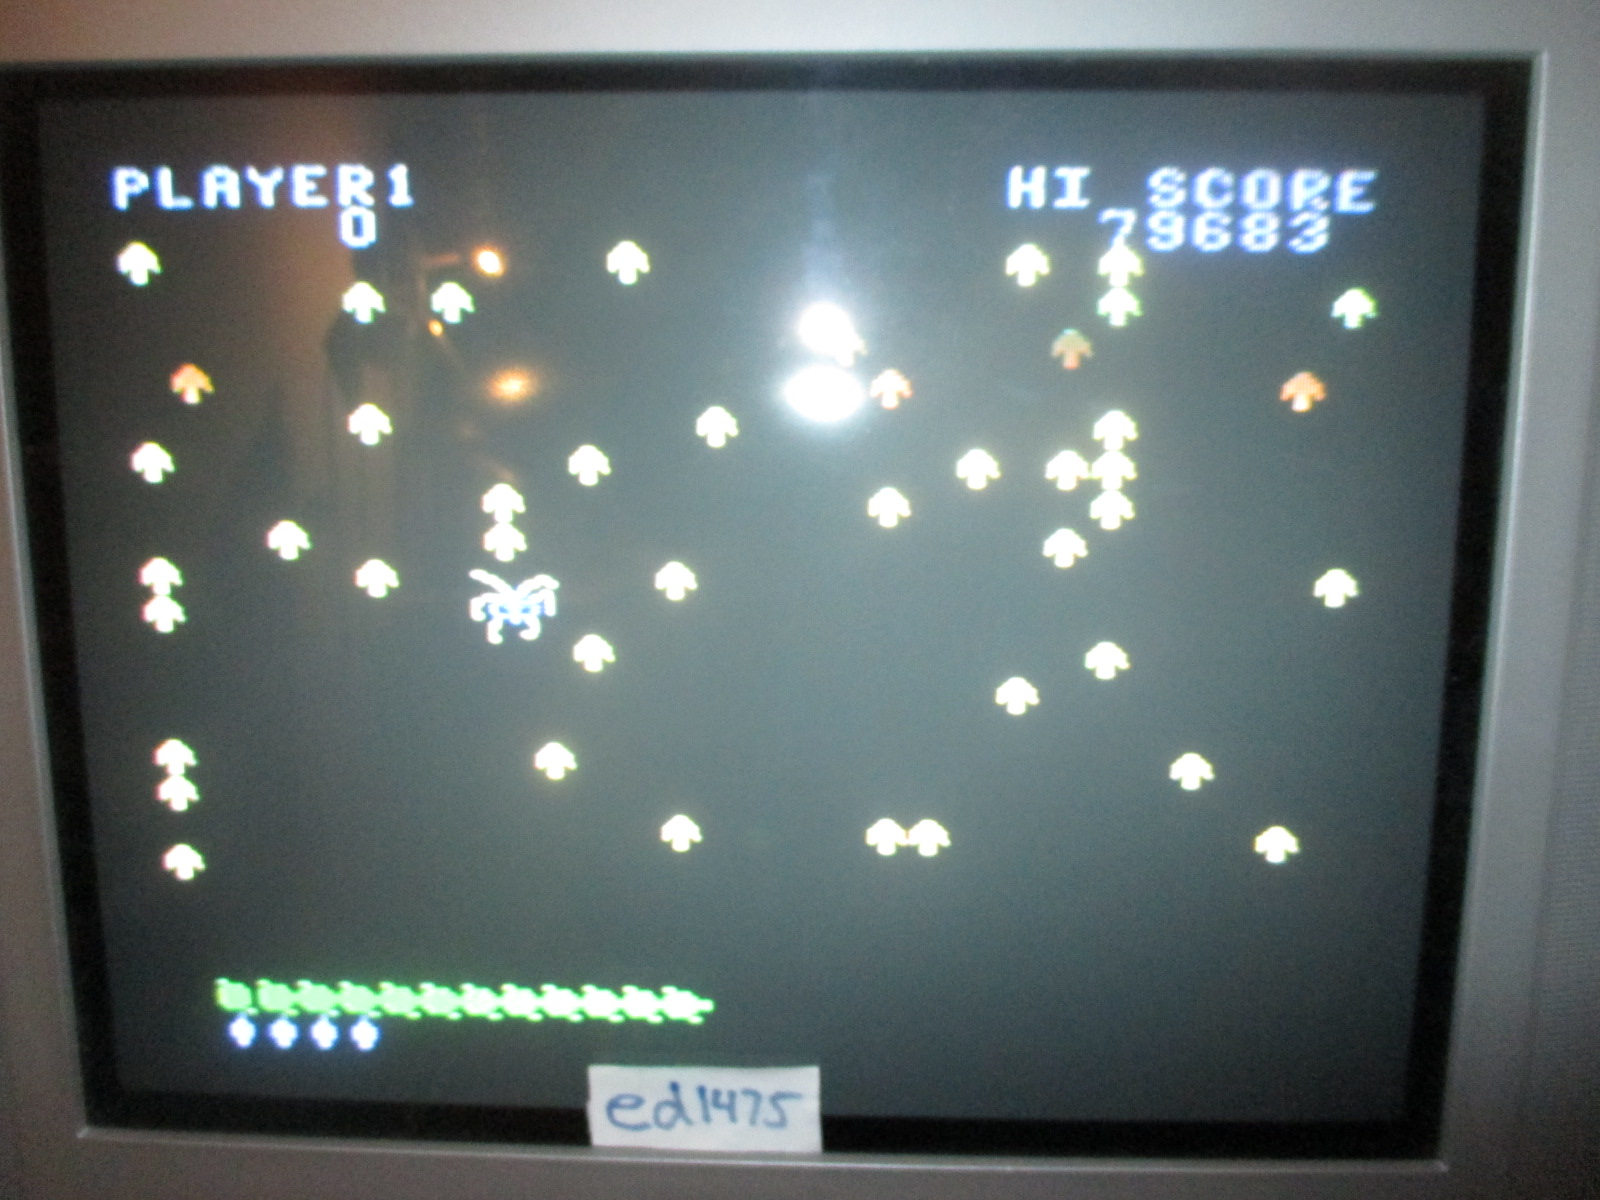 ed1475: Centipede: Easy (Colecovision) 79,683 points on 2014-06-30 19:42:38